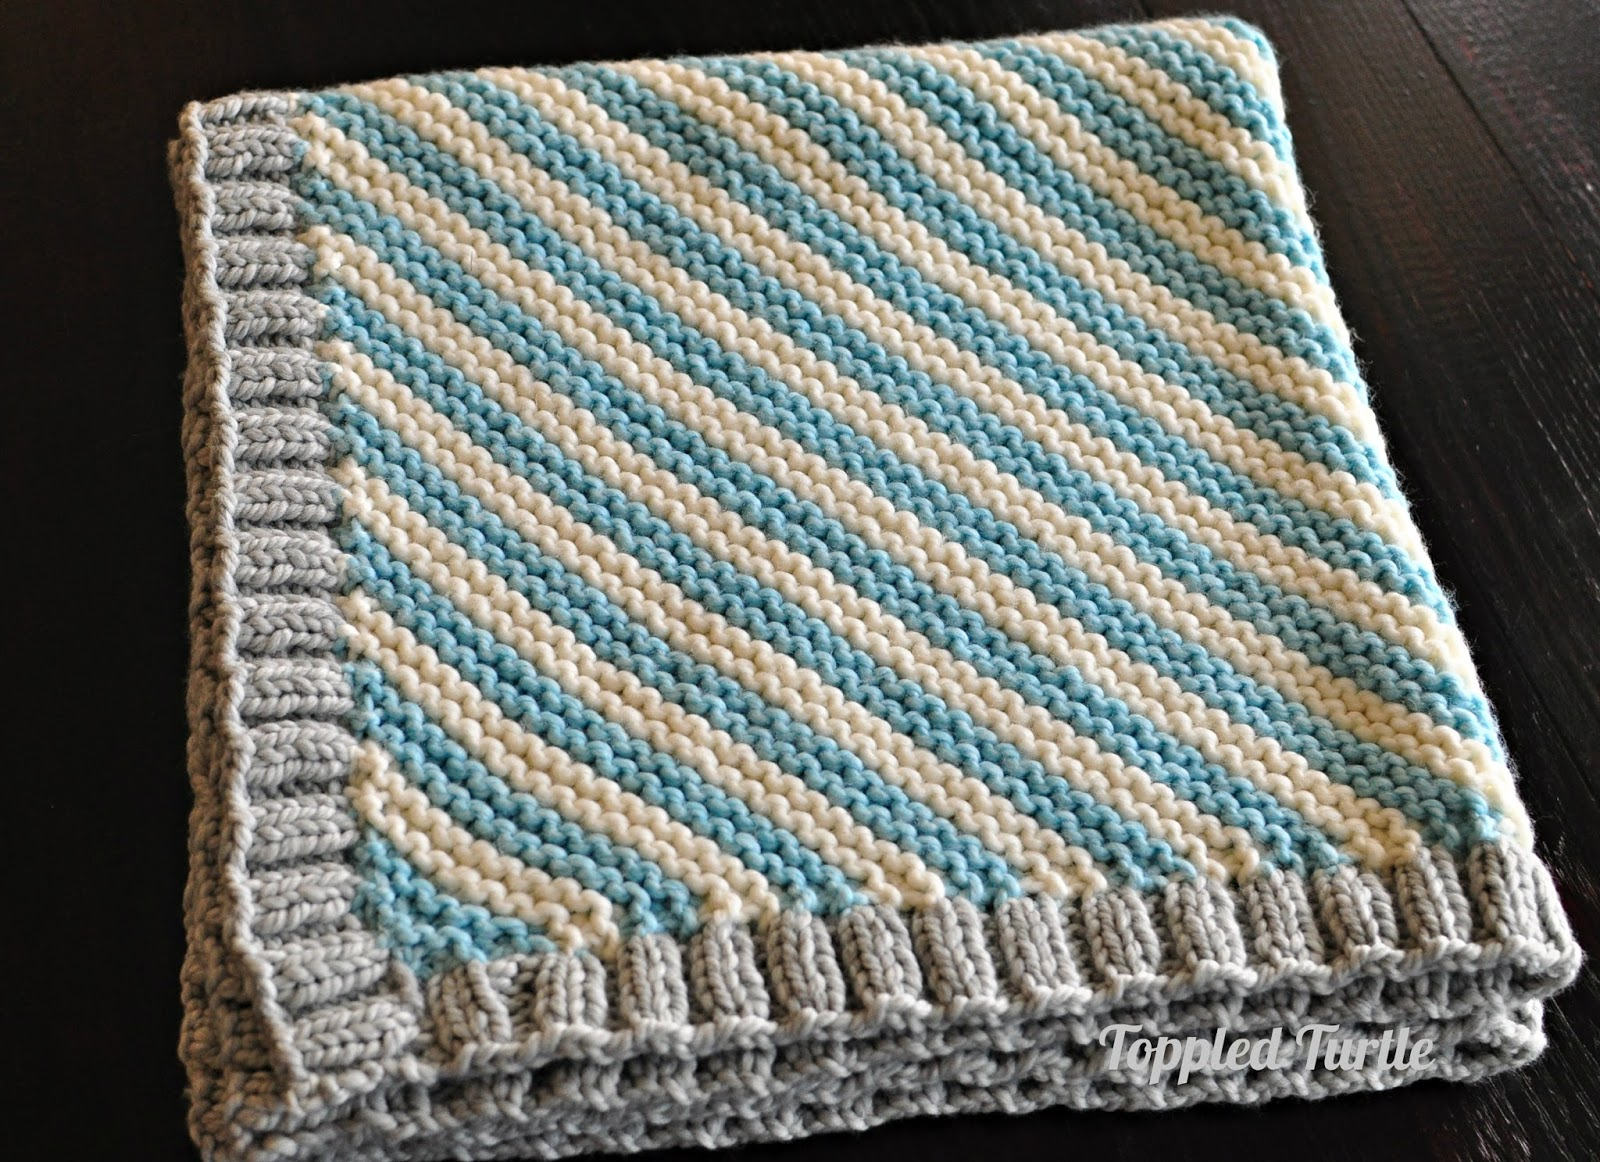 Toppled Turtle: Bias Striped Knit Baby Blanket - Free Pattern